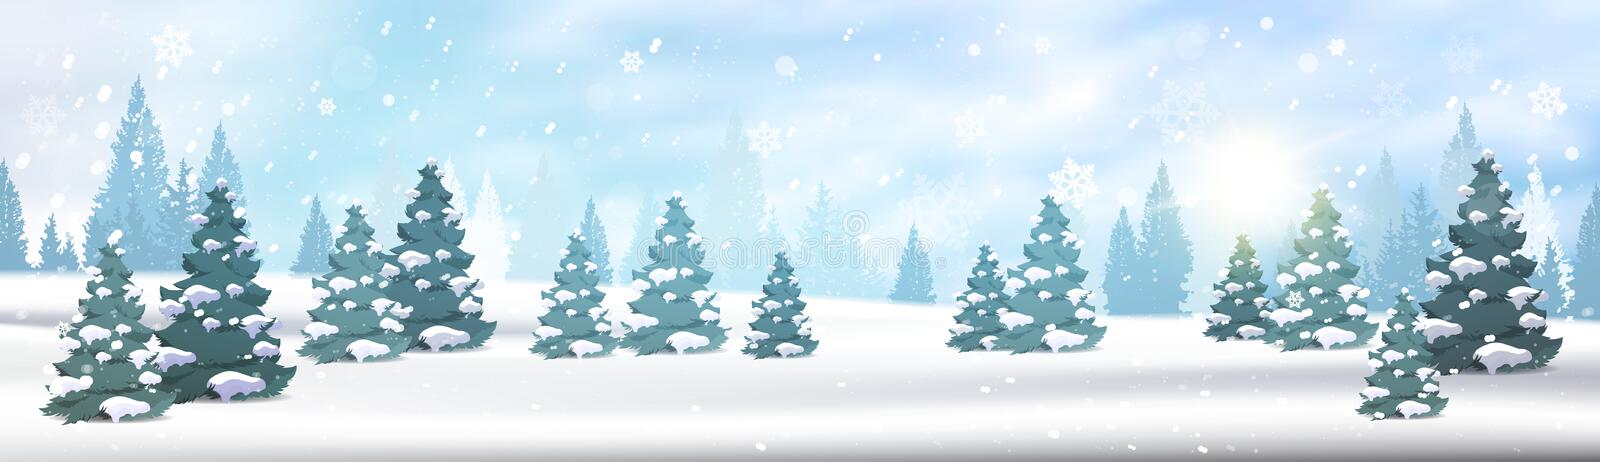 Winter Forest Landscape Horizontal Banner Pine Trees Falling Snow White View Blue Sky Christmas Concept. Flat Vector Illustration stock illustration